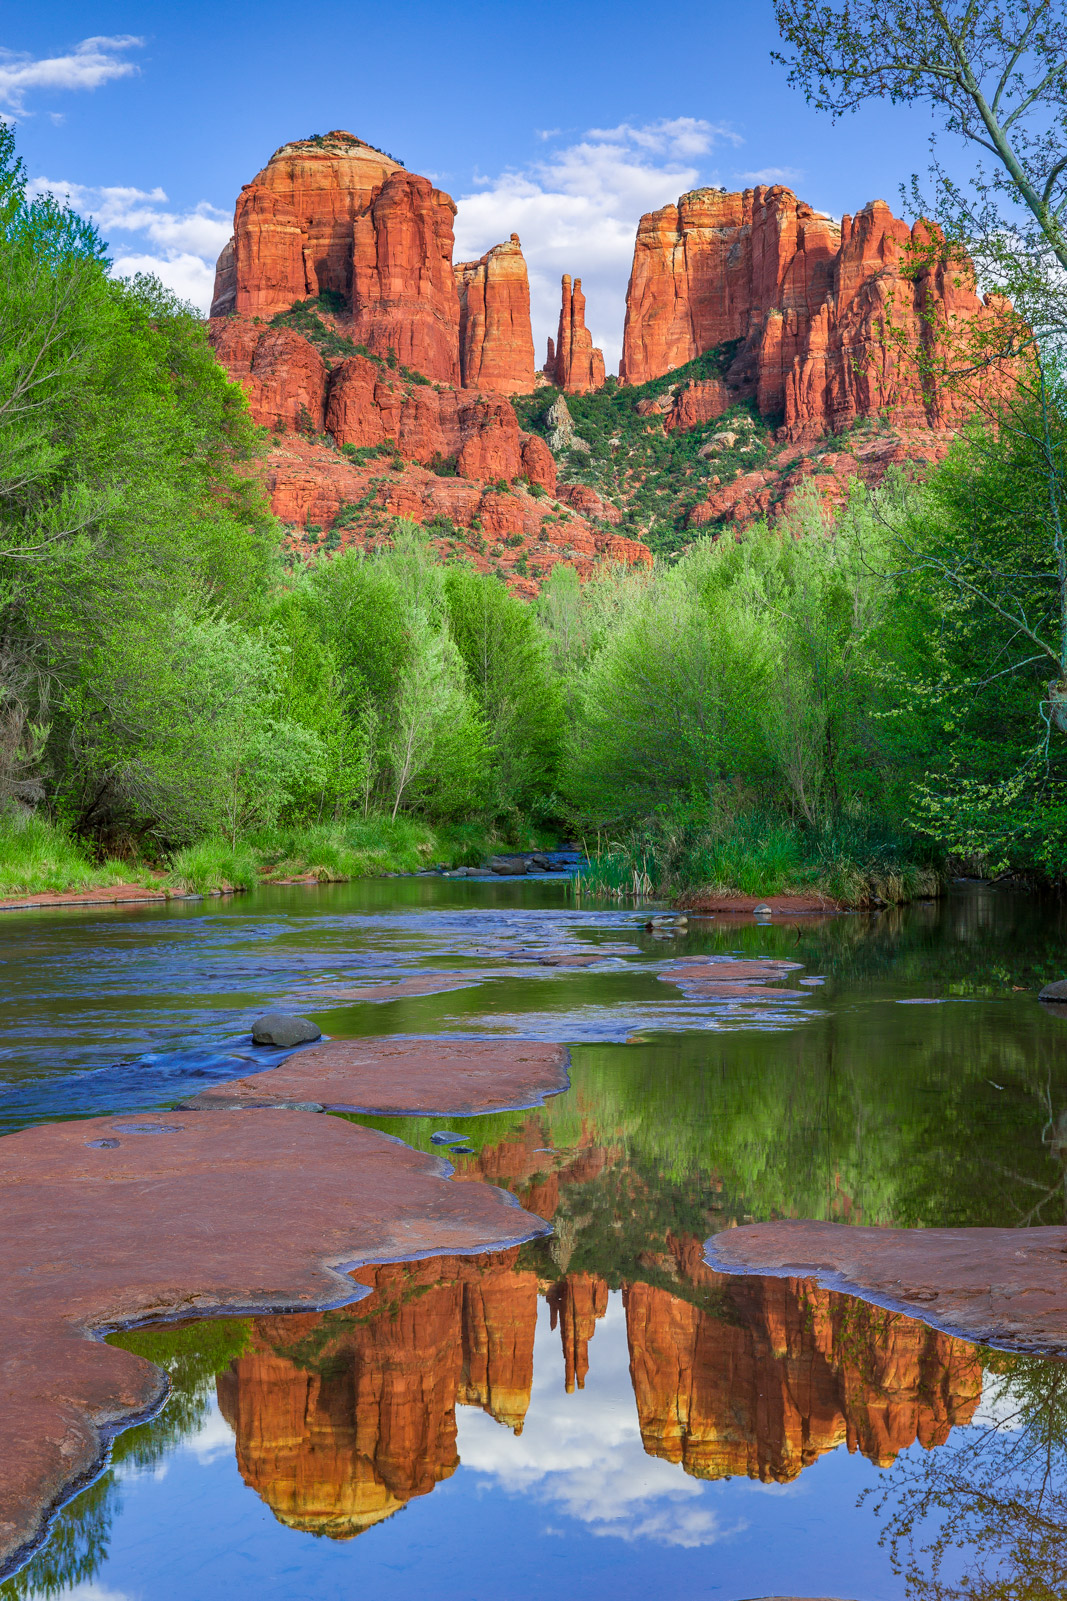 Arizona, Sedona, Red Rock, Cathedral Rock, Reflection, Oak Creek, limited edition, photograph, fine art, landscape, red rock, photo